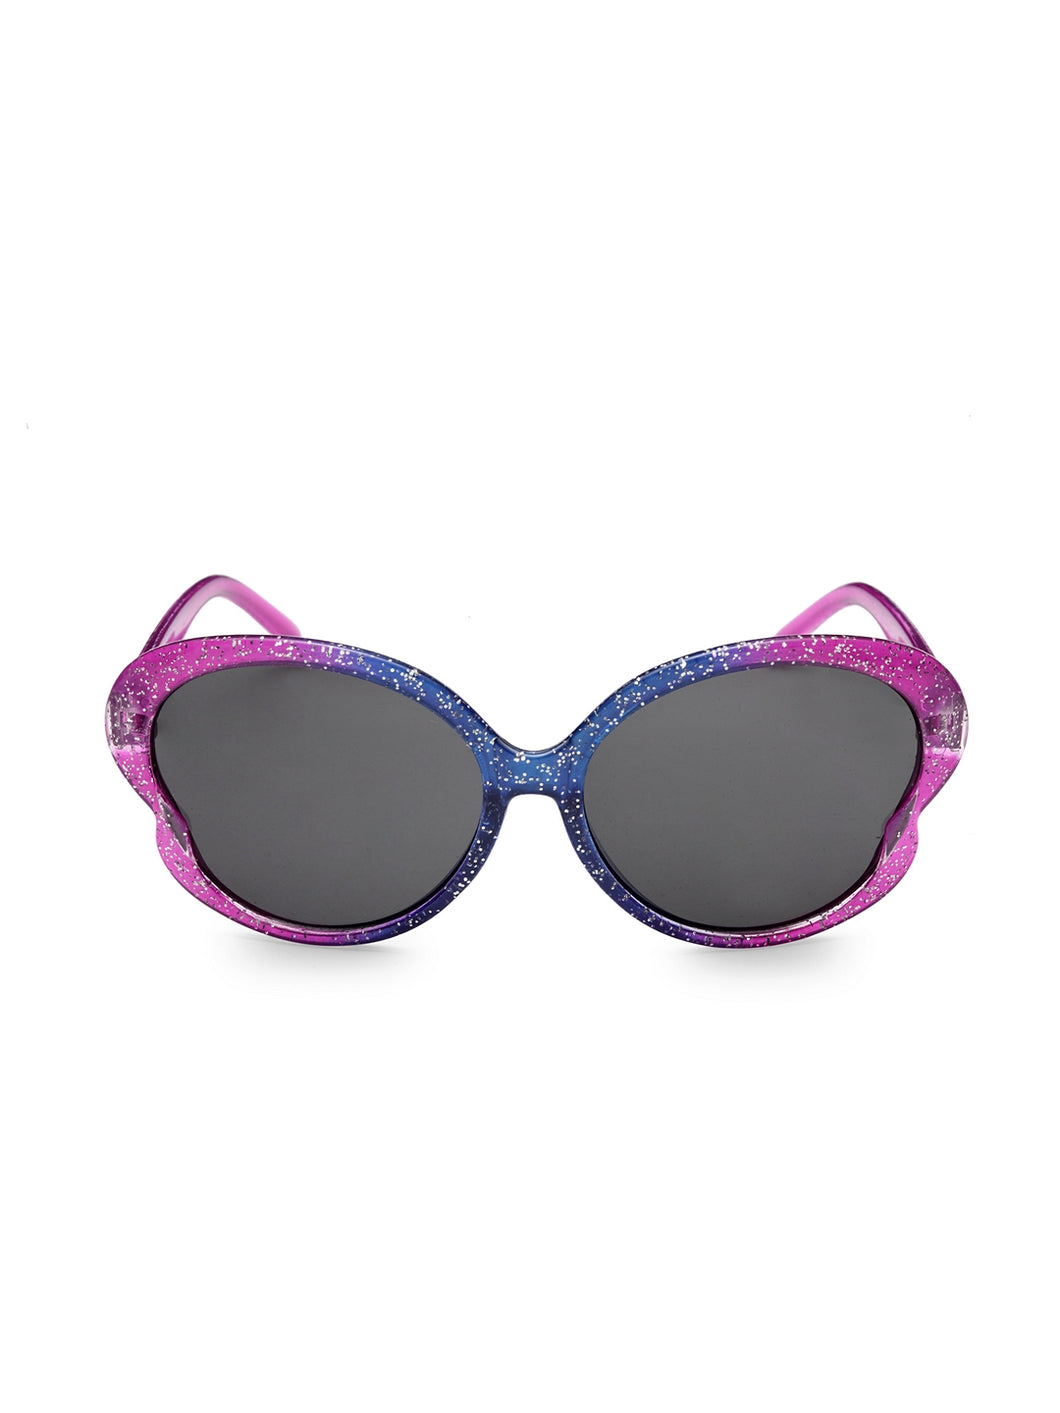 Stol'n  Sunglasses For Kids ( UV Protected) Sea Green and Pink